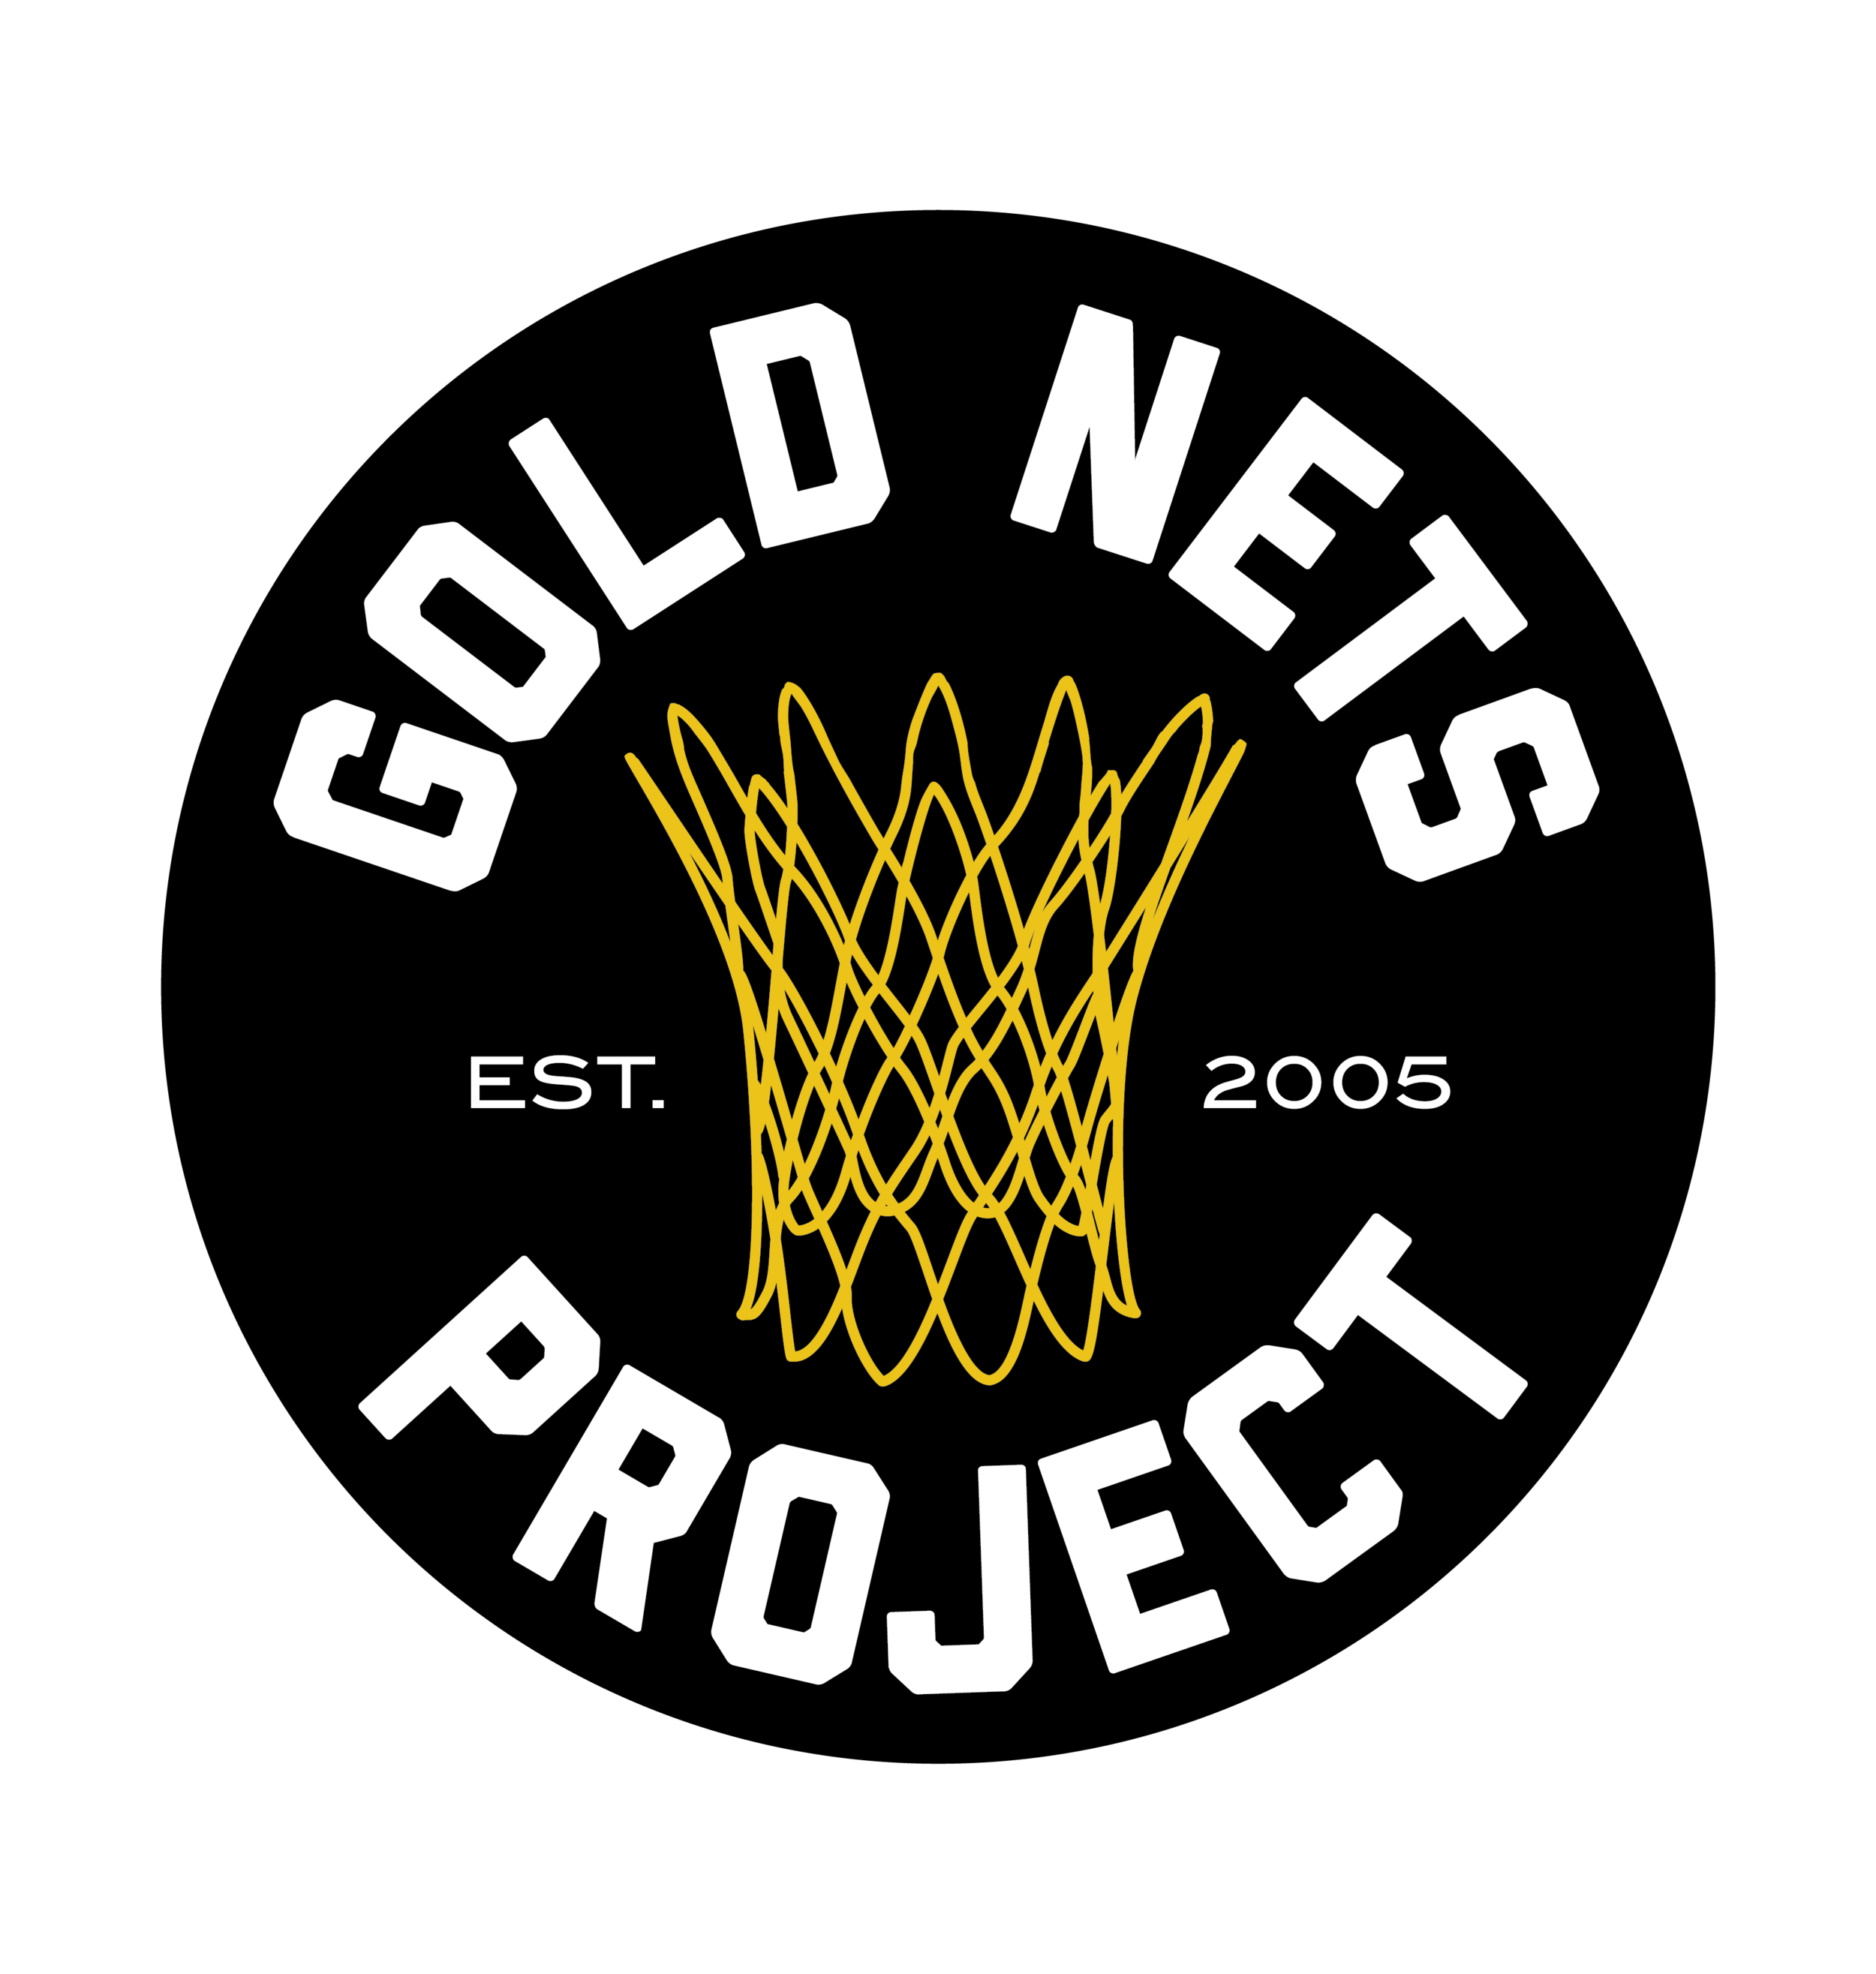 GoldNets_FINALv2-01.png